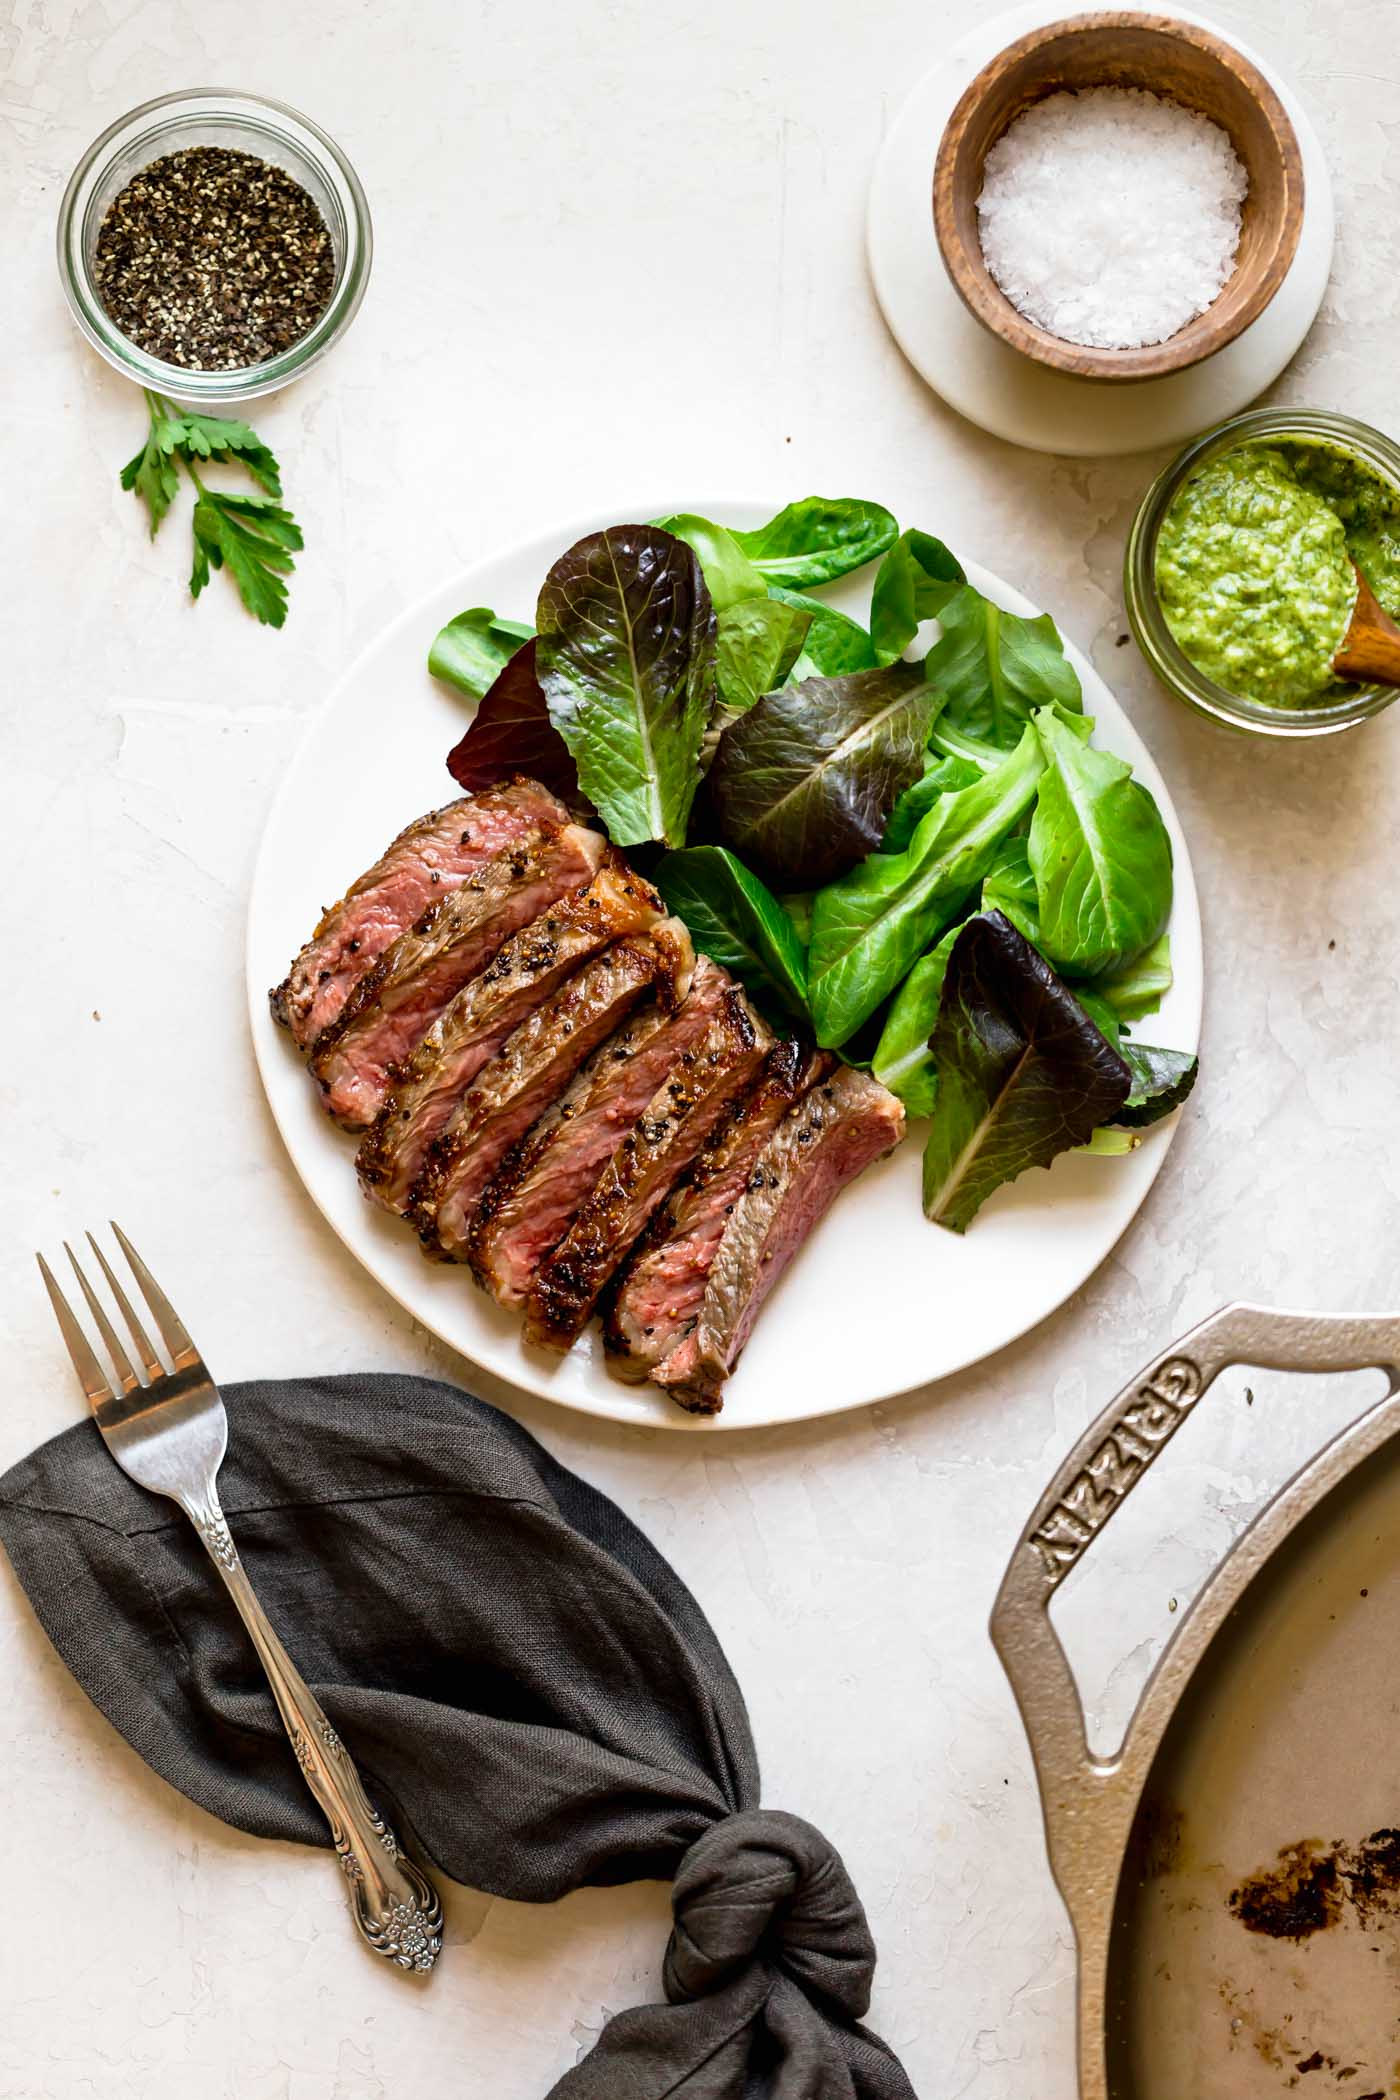 a cast iron steak recipe to show you how to cook steakhouse quality steaks at home. you only need 5 ingredients, 3 minutes, & 1 great skillet to cook a perfectly medium rare cast iron steak on your stove top - how easy is that?! #playswellwithbutter #castironsteak #easysteakrecipe #steakhousesteakrecipe #castironrecipe